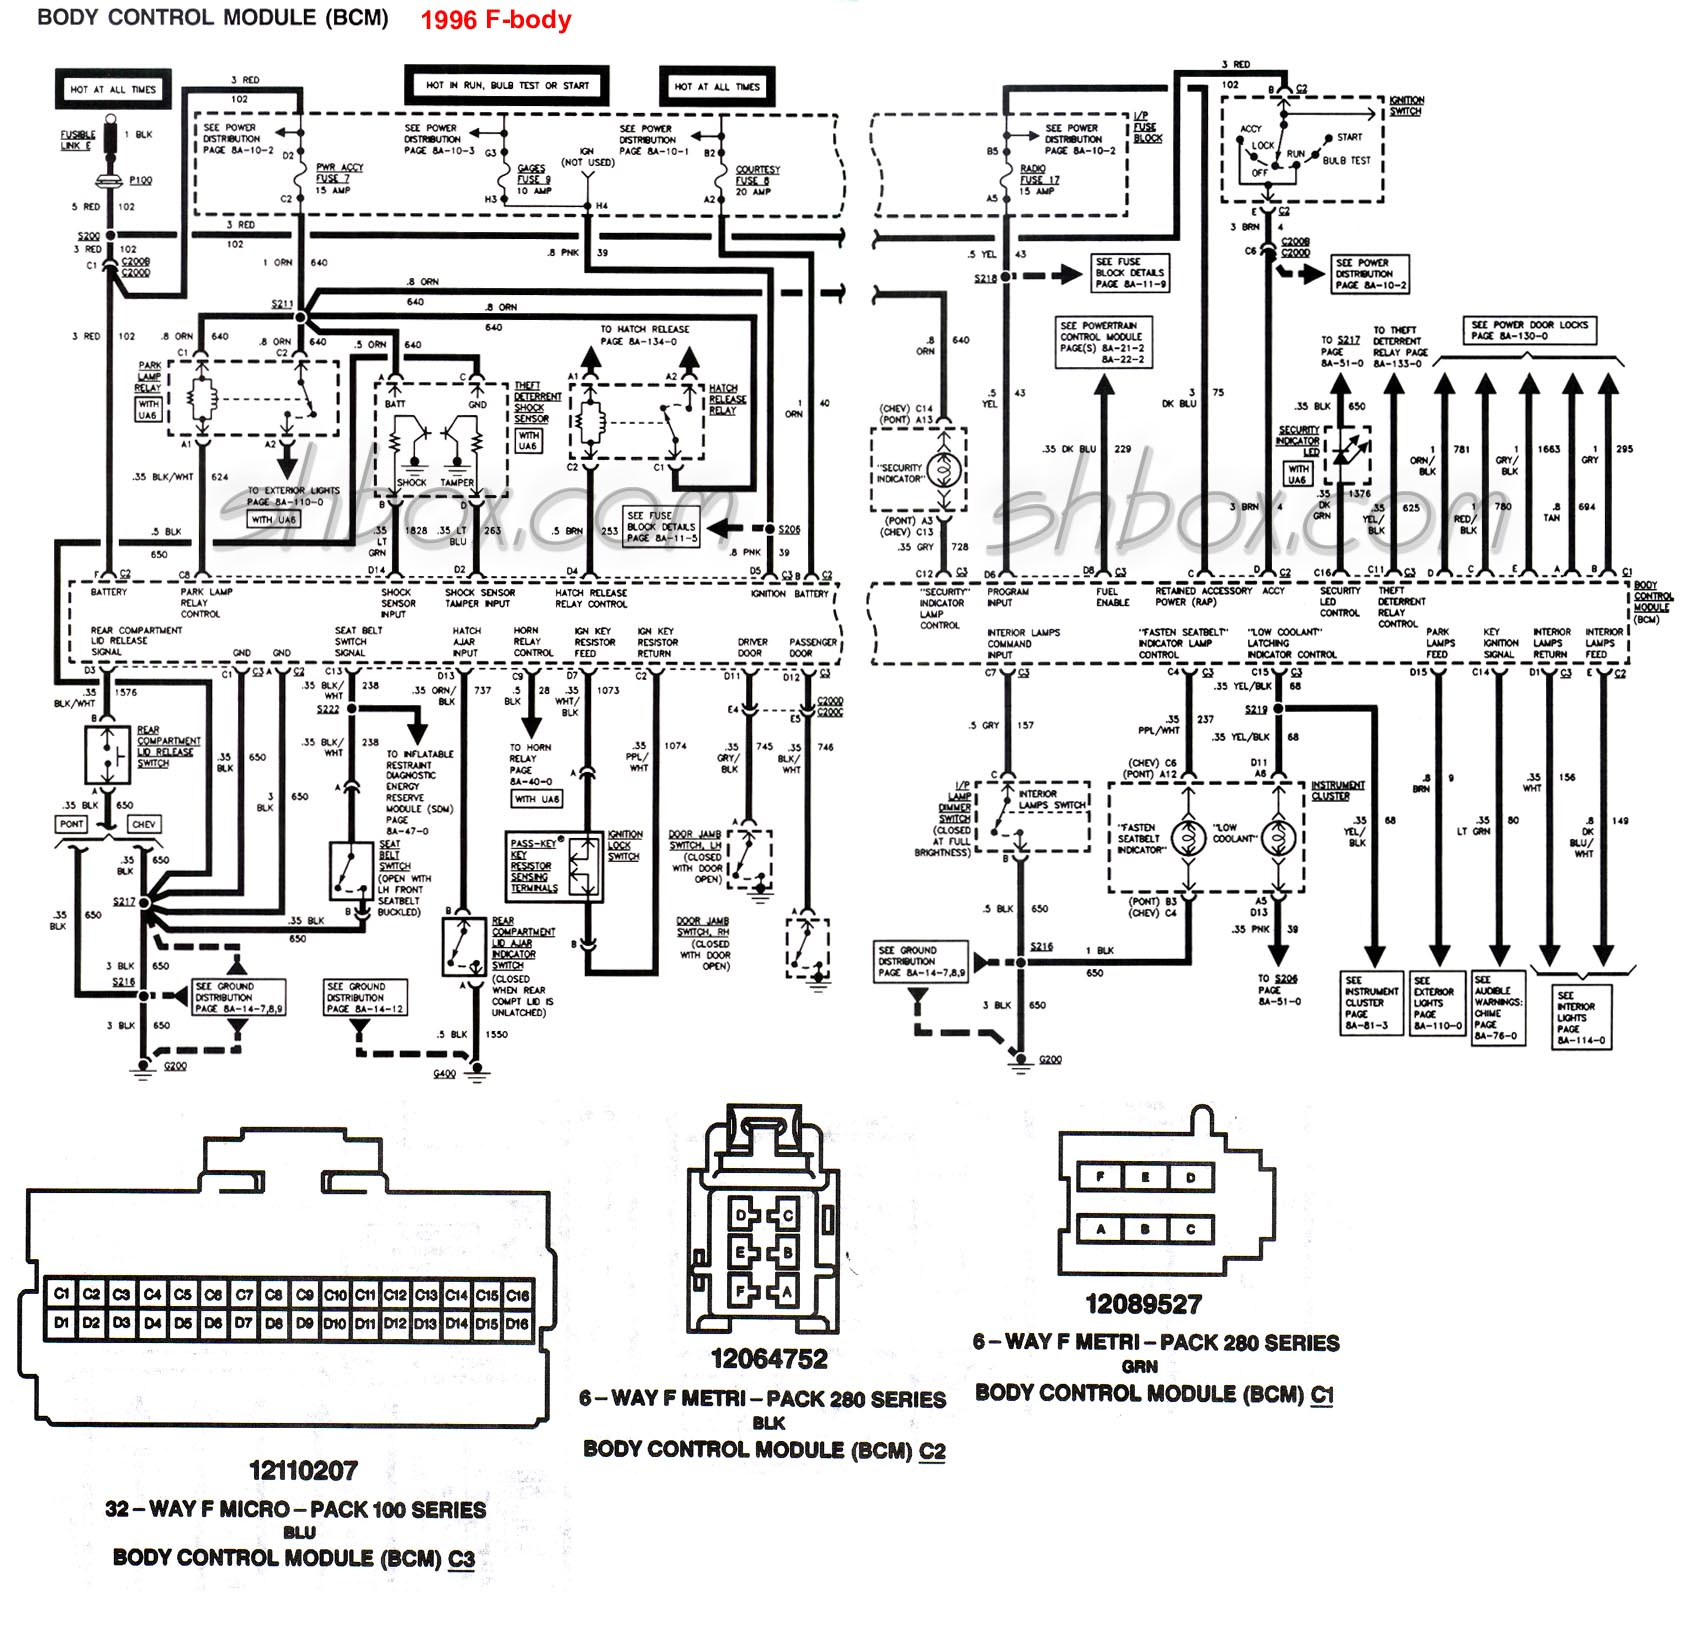 Wiring Harness Diagram For 4g63 Get Free Image About Wiring Diagram